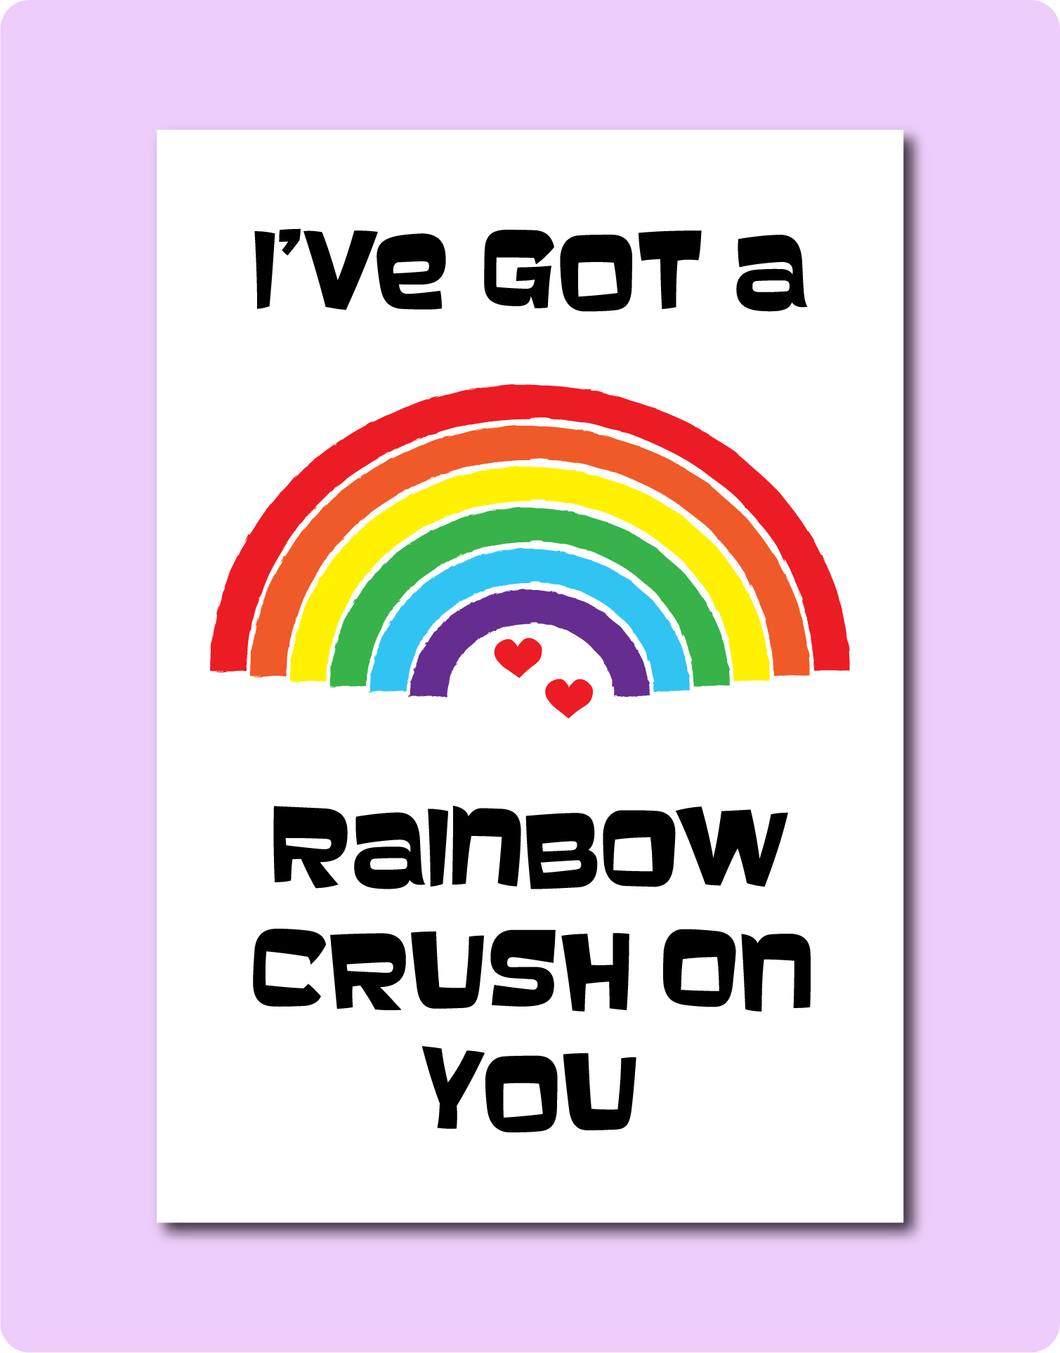 Ive got a Rainbow Crush on you LGBT Love Valentine's Day Greeting Card